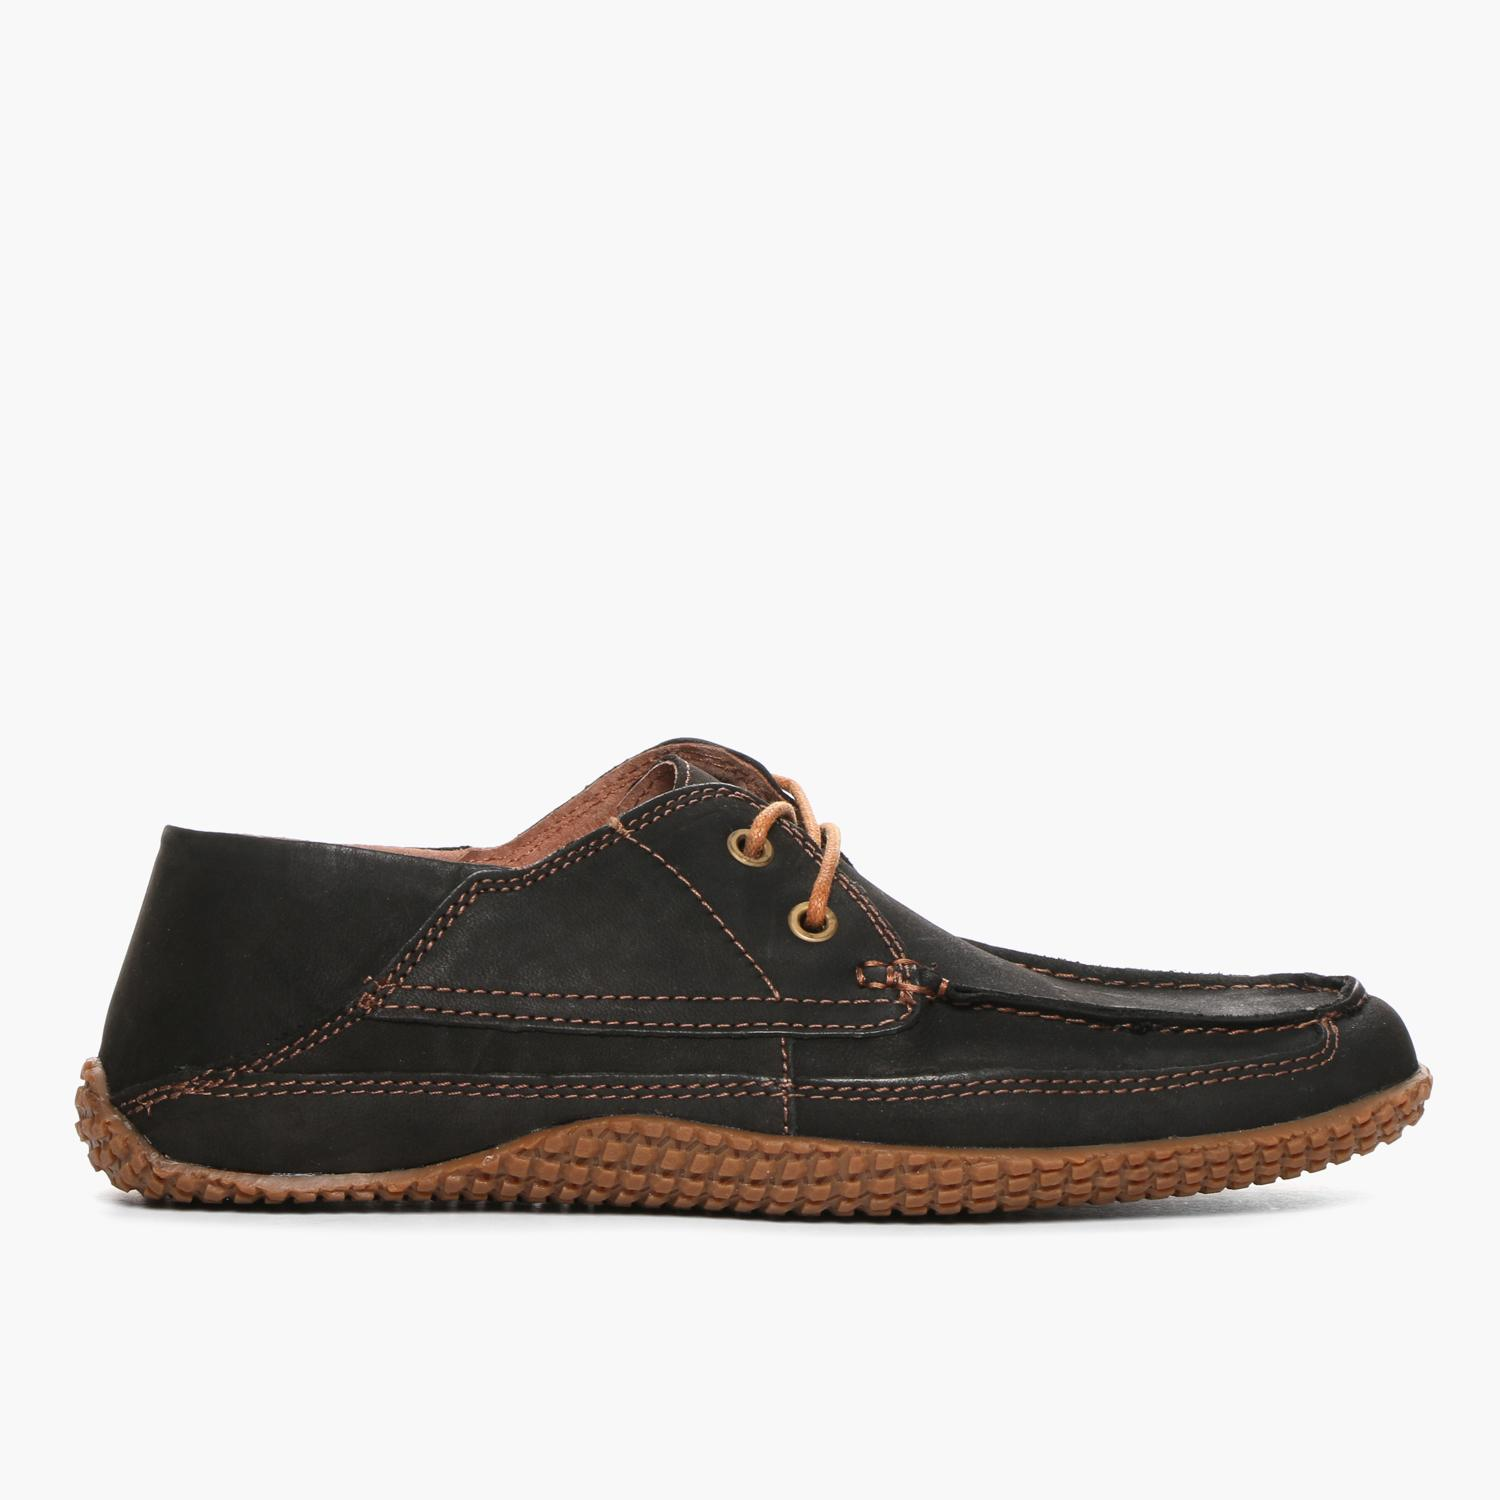 11984315d04a0 Hush Puppies Philippines: Hush Puppies price list - Hush Puppies ...